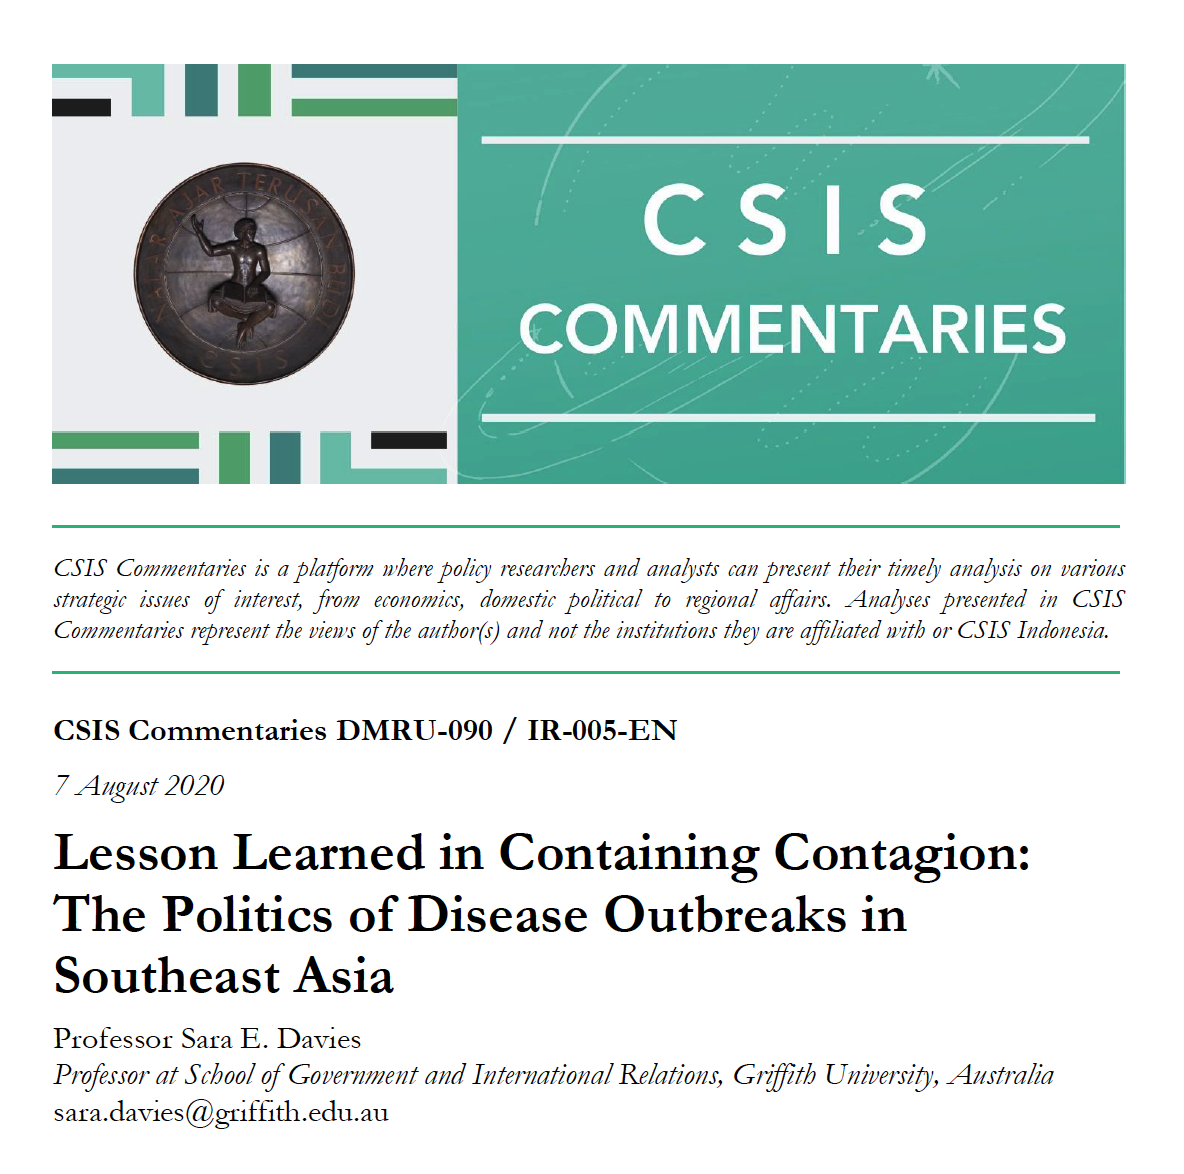 Lesson Learned in Containing Contagion: The Politics of Disease Outbreaks in Southeast Asia